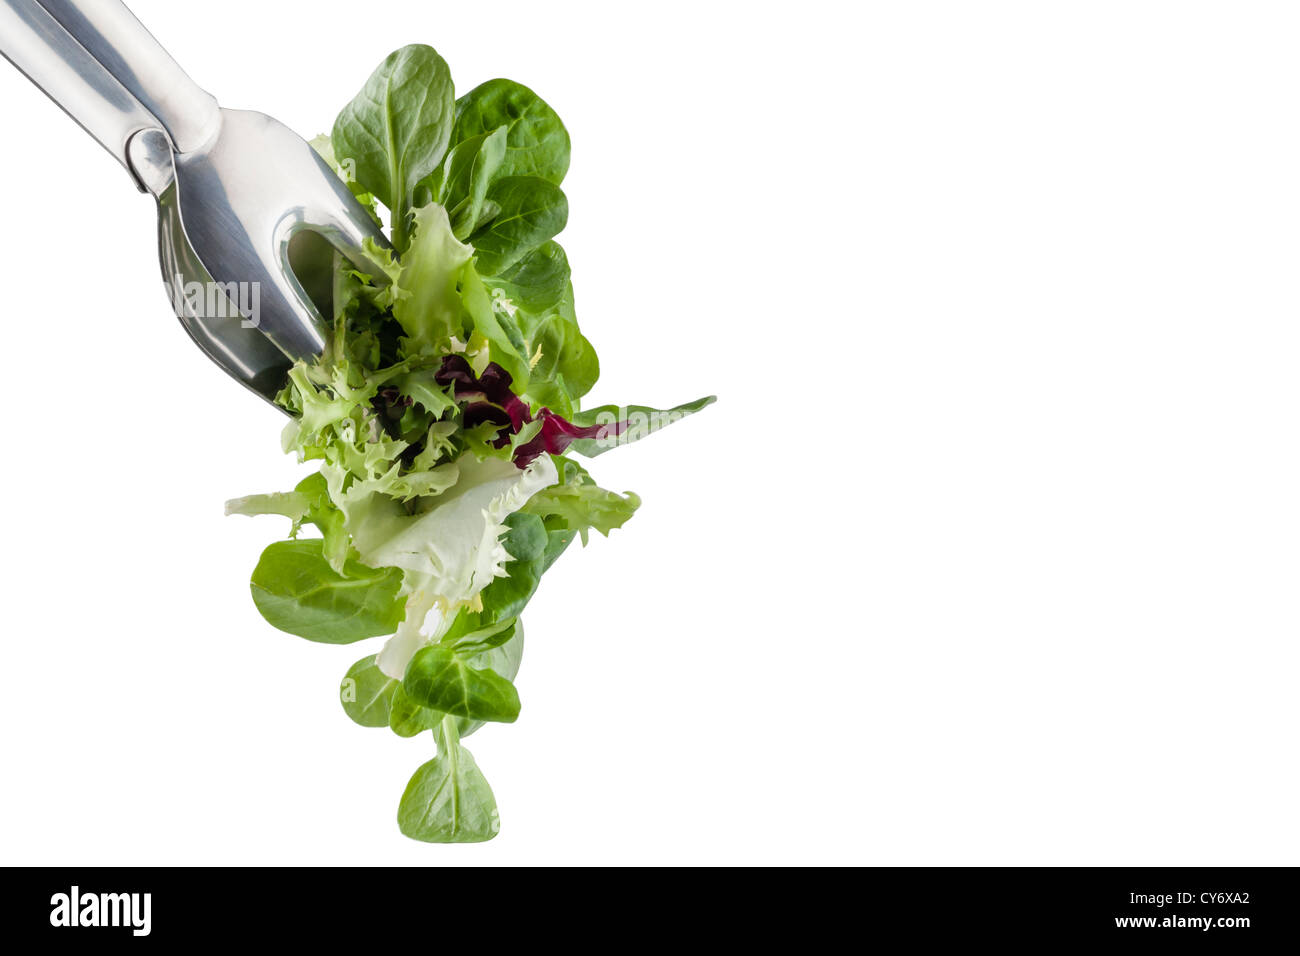 fresh salad in a clamp isolated on white background and copy space - Stock Image